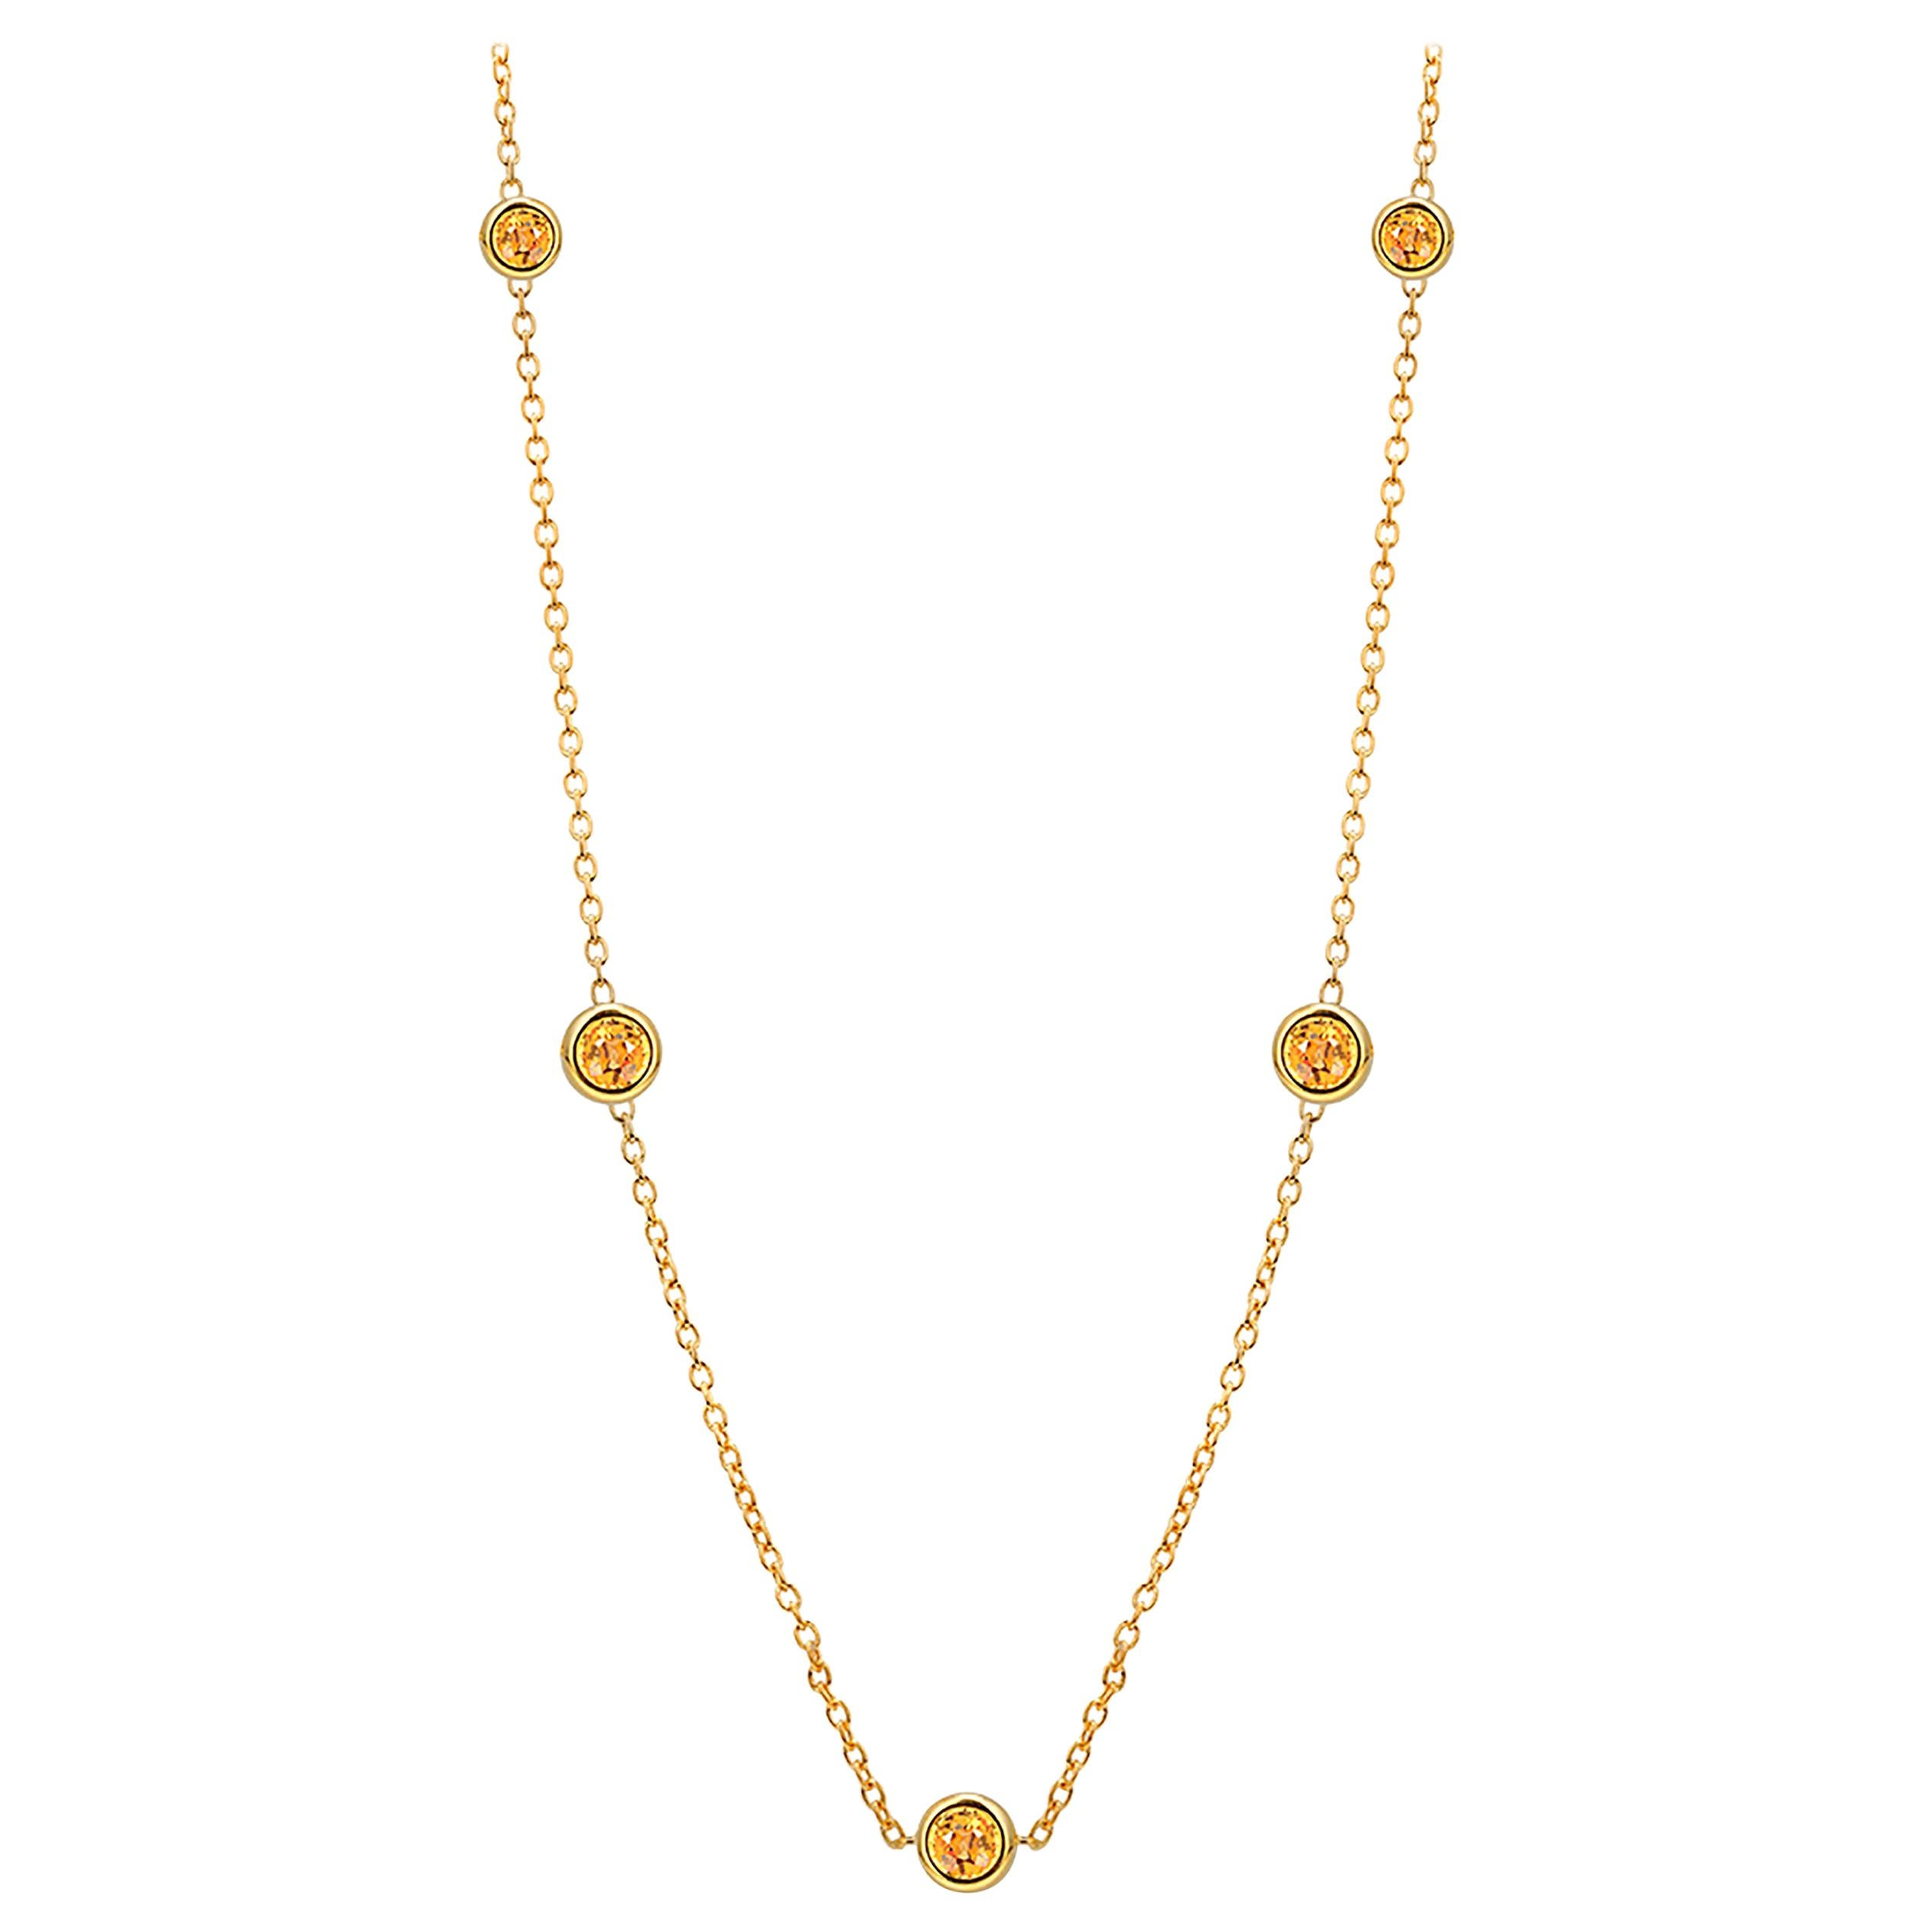 Five Natural Yellow Sapphires Bezel Necklace Sterling Silver Yellow Gold-Plated